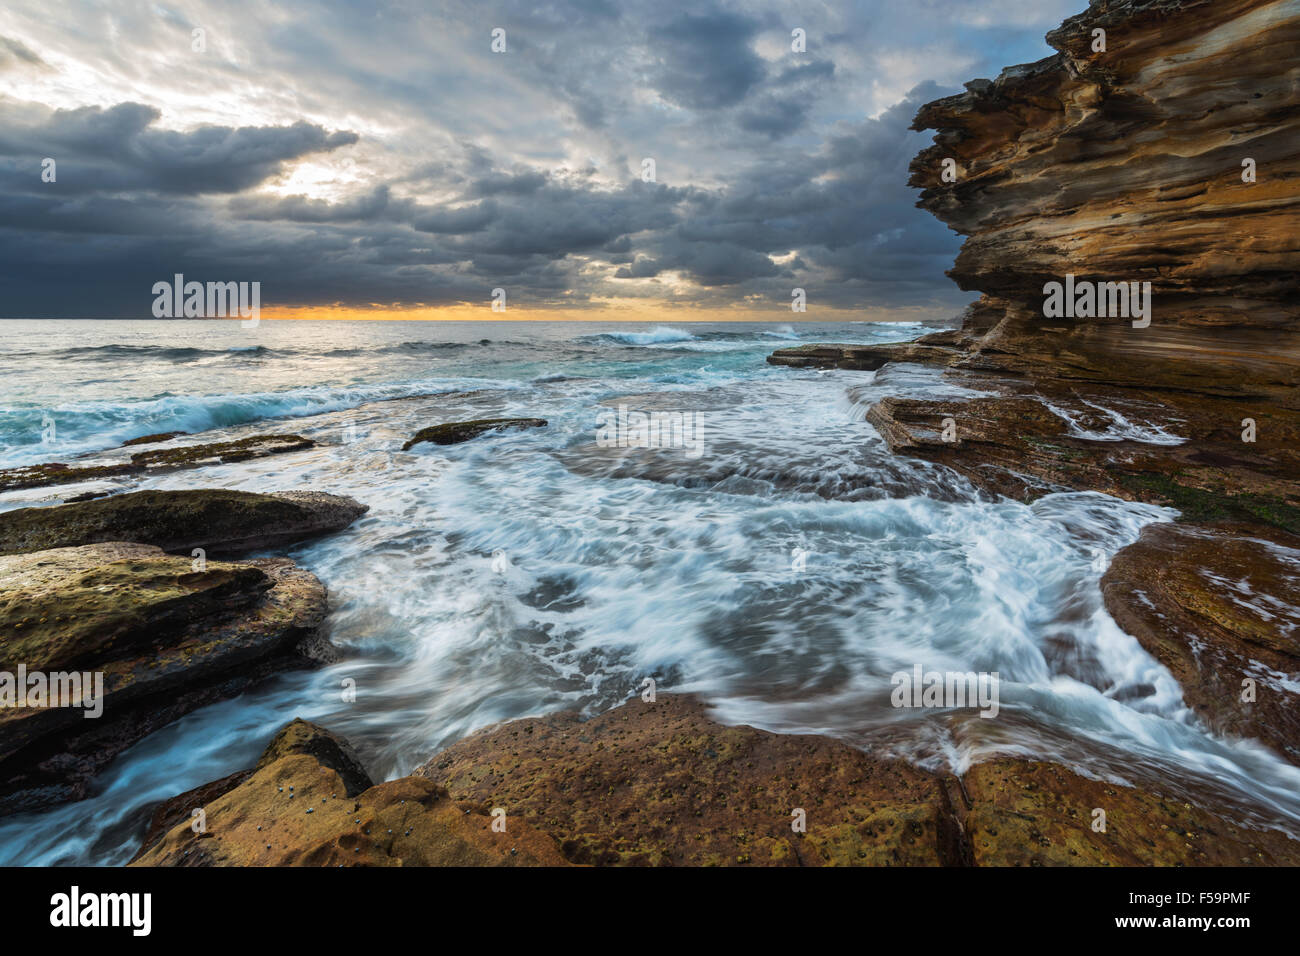 Seascape sunrise with unrest sea and grim sky and cliffs - Stock Image